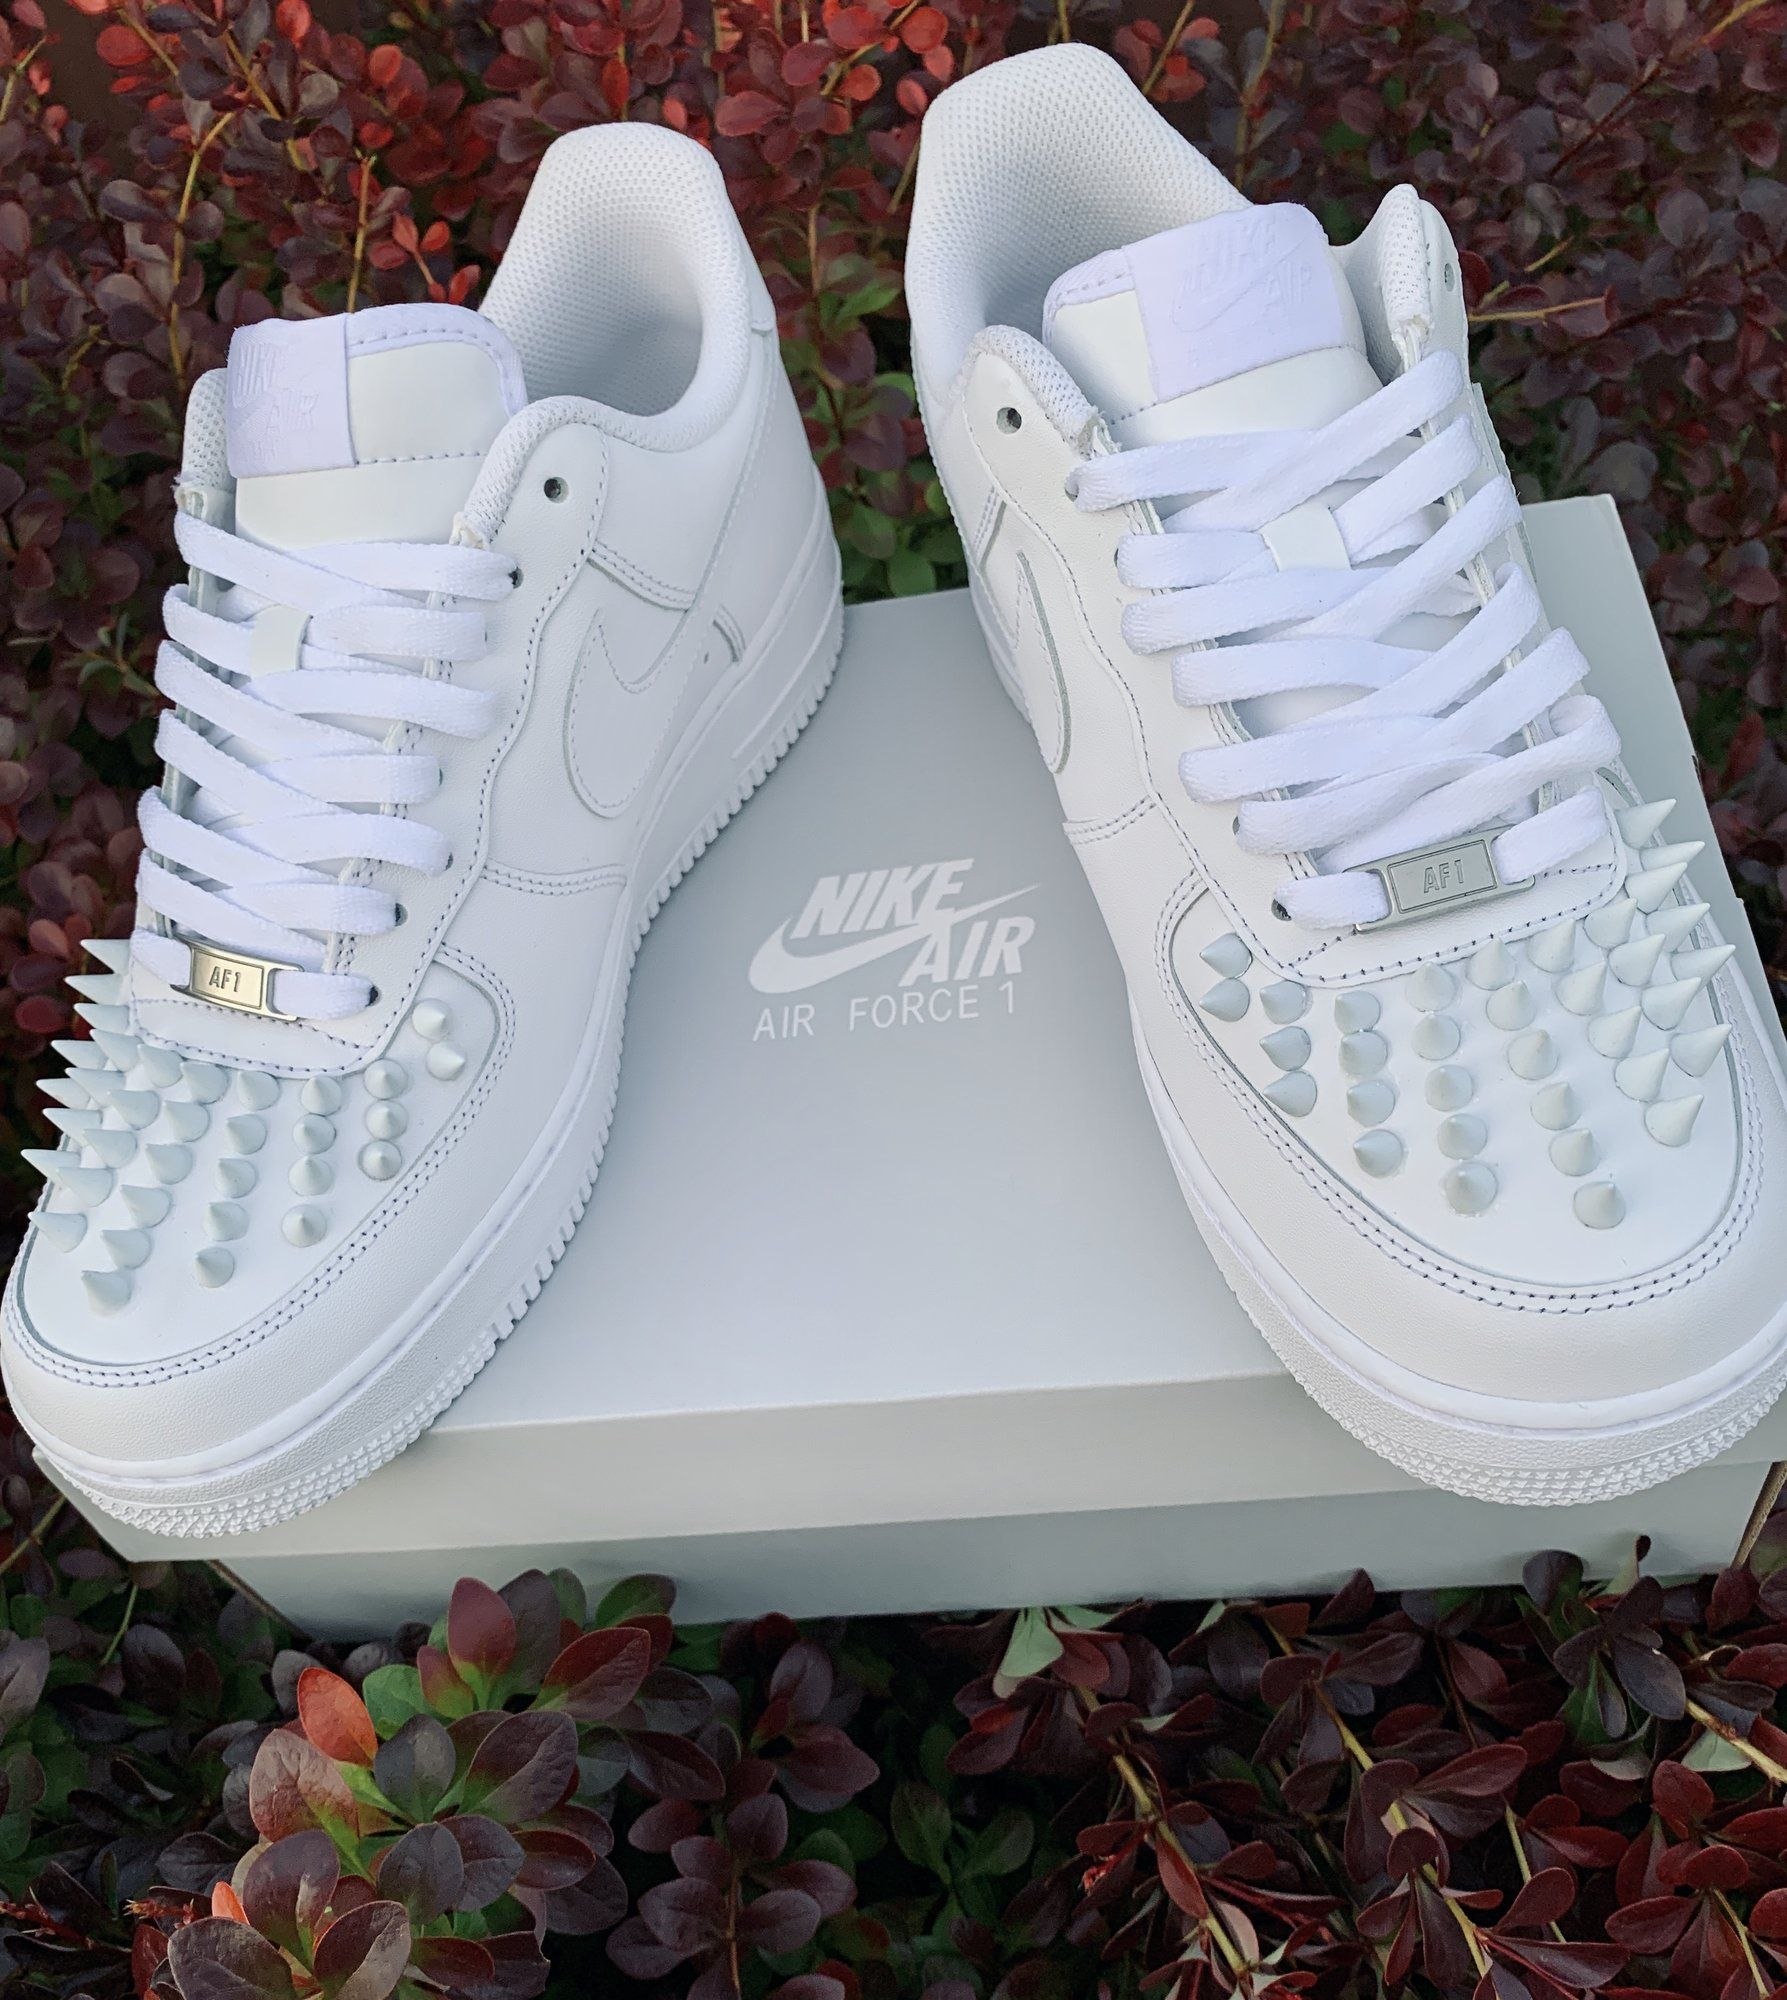 Burberry AF1s Shadow White in 2020 Hype shoes, Christian